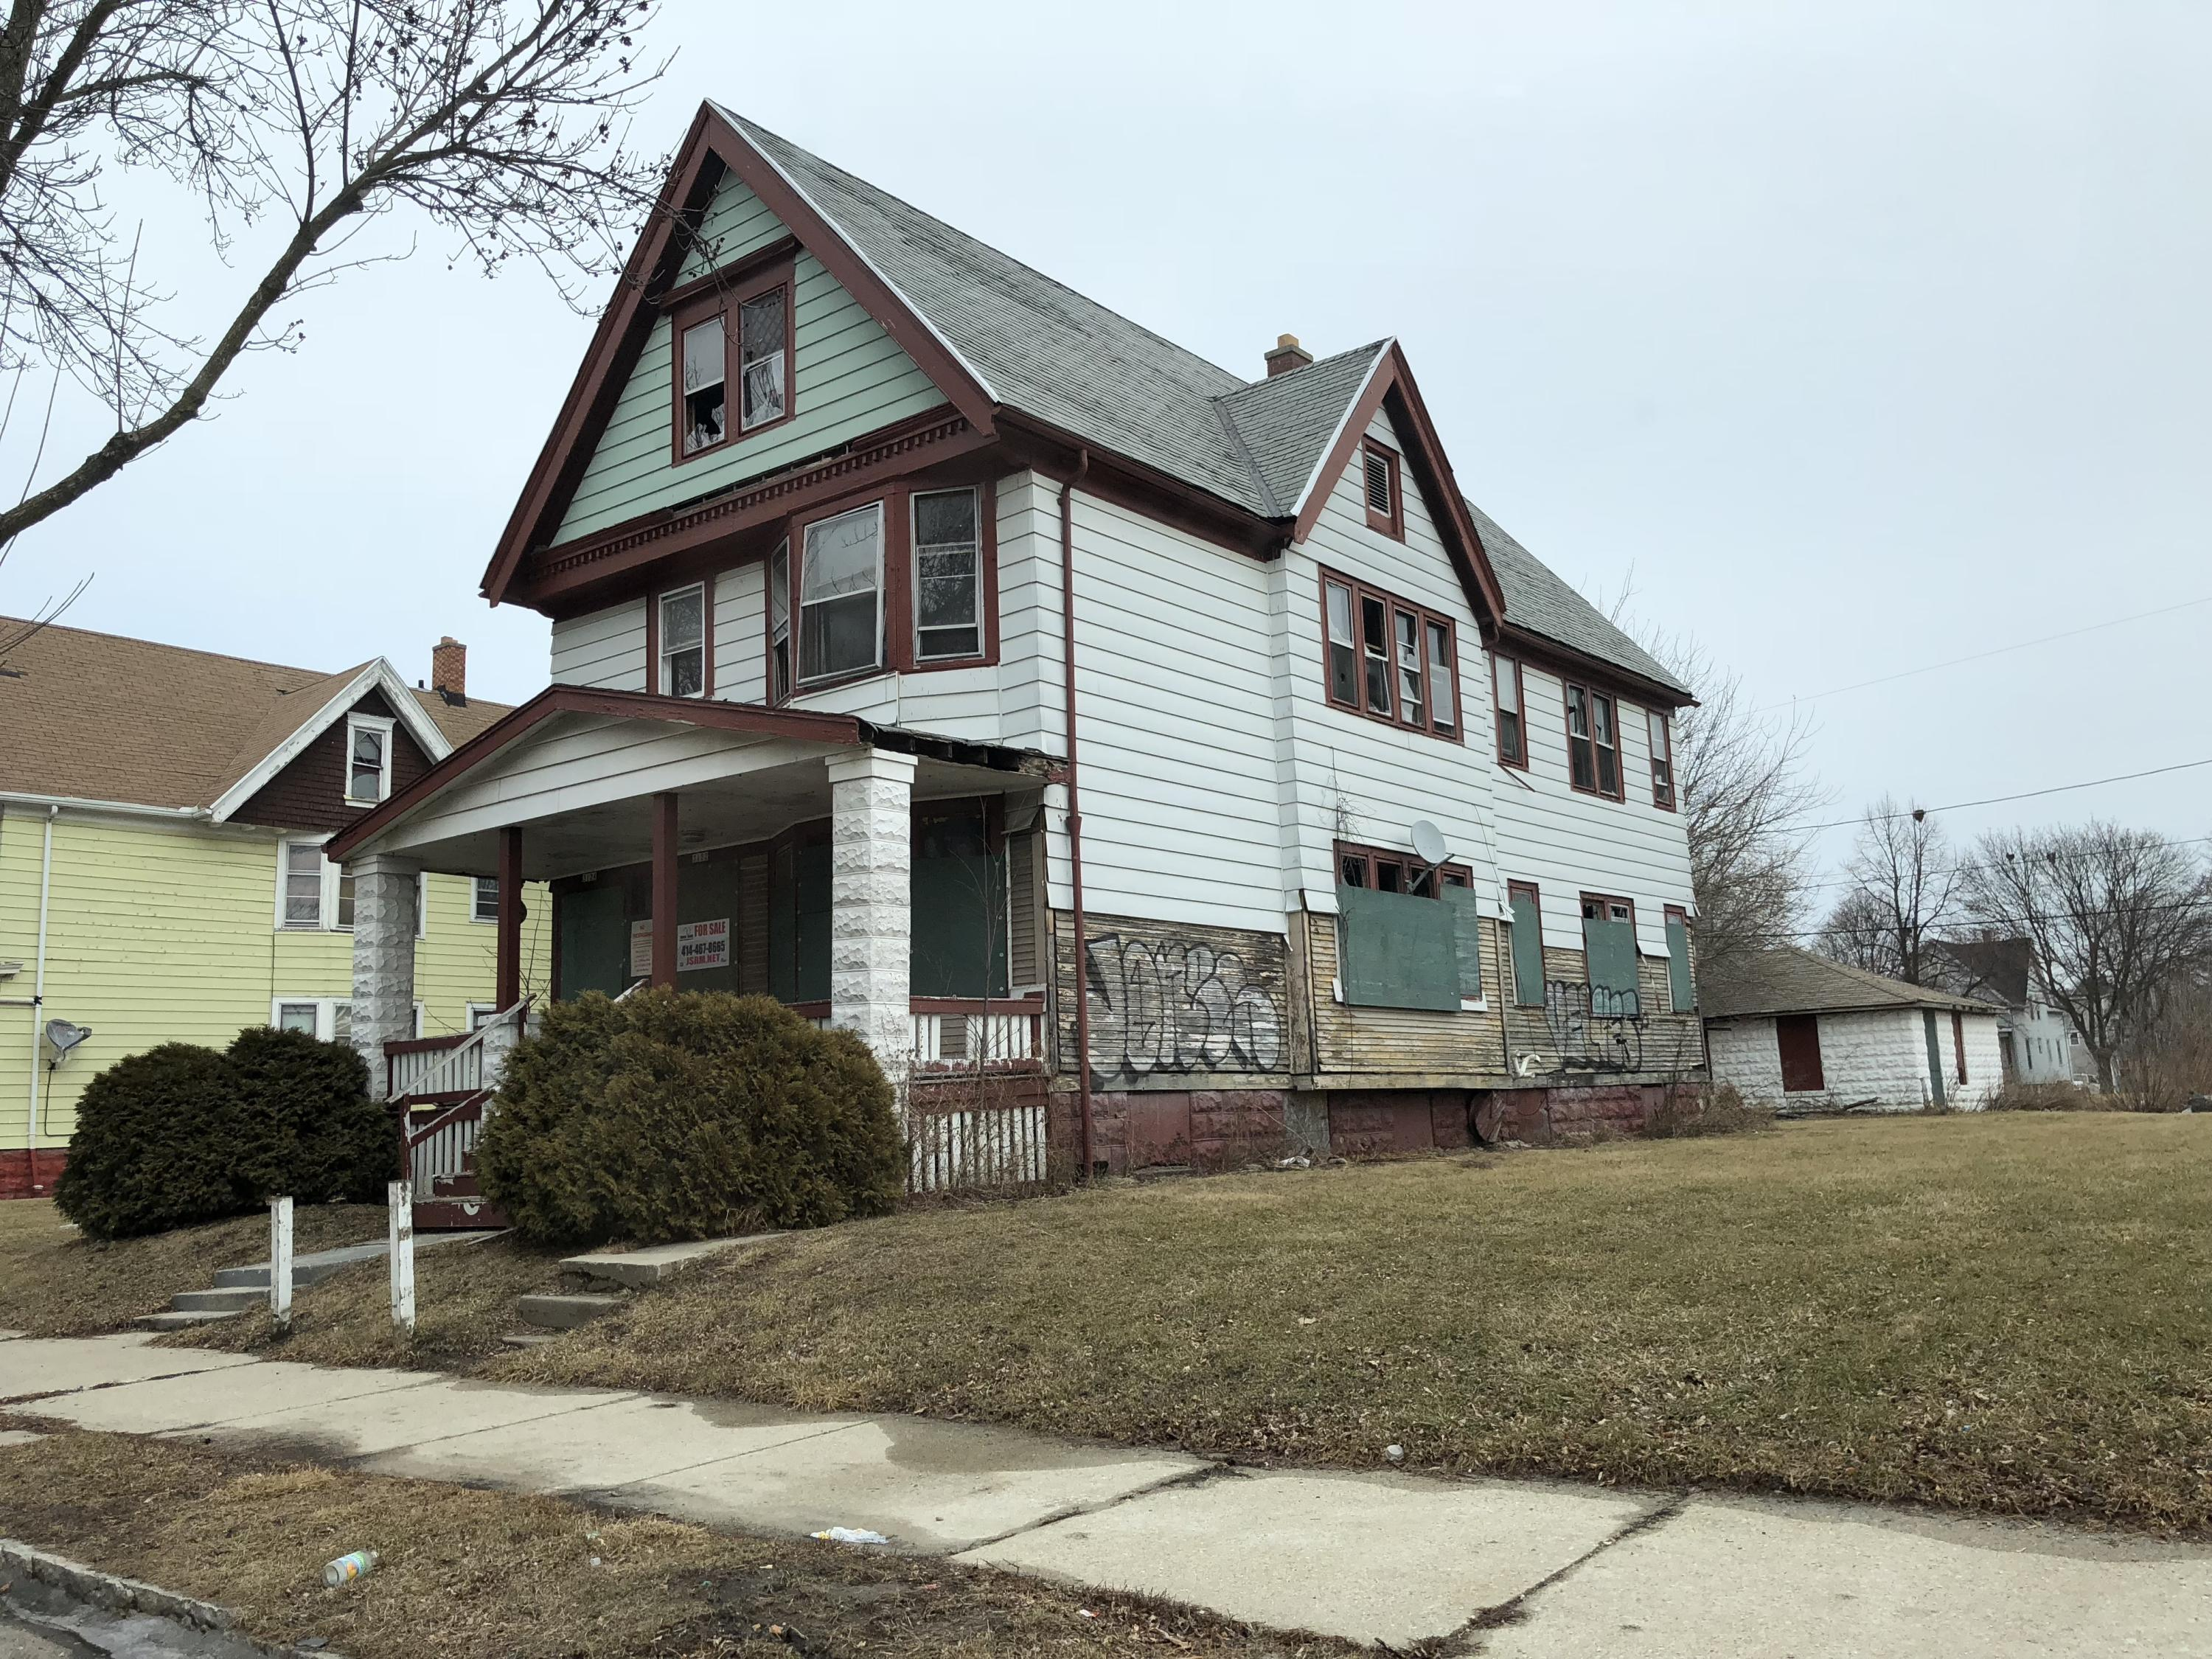 3122 10TH ST, Milwaukee, Wisconsin 53206, 2 Bedrooms Bedrooms, 5 Rooms Rooms,1 BathroomBathrooms,Two-Family,For Sale,10TH ST,1,1568036